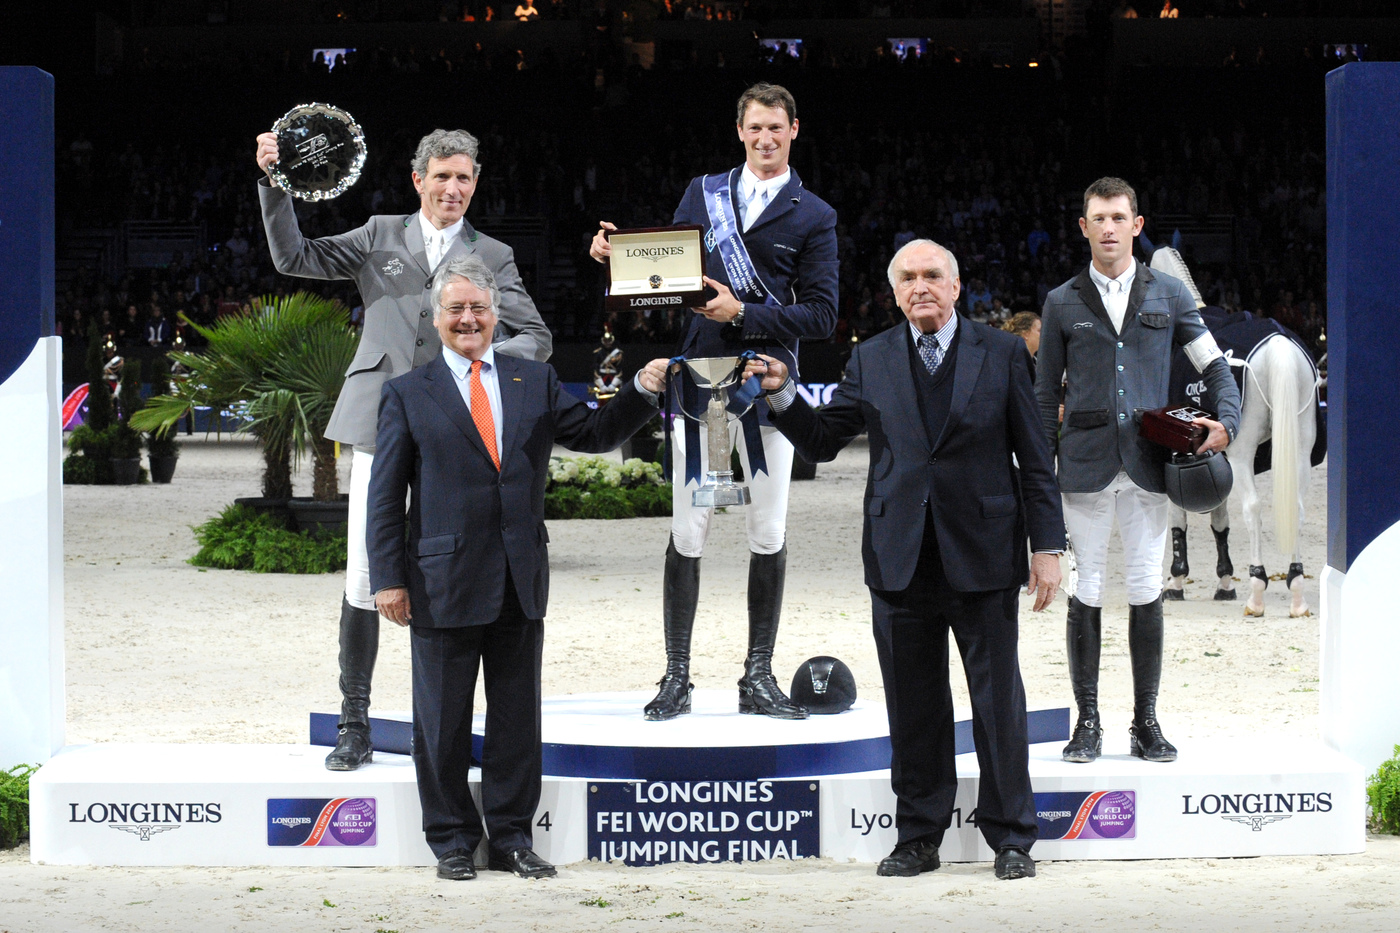 Longines Show Jumping Event: The Longines FEI World Cup™ Jumping Final: a perfect end to the series 1